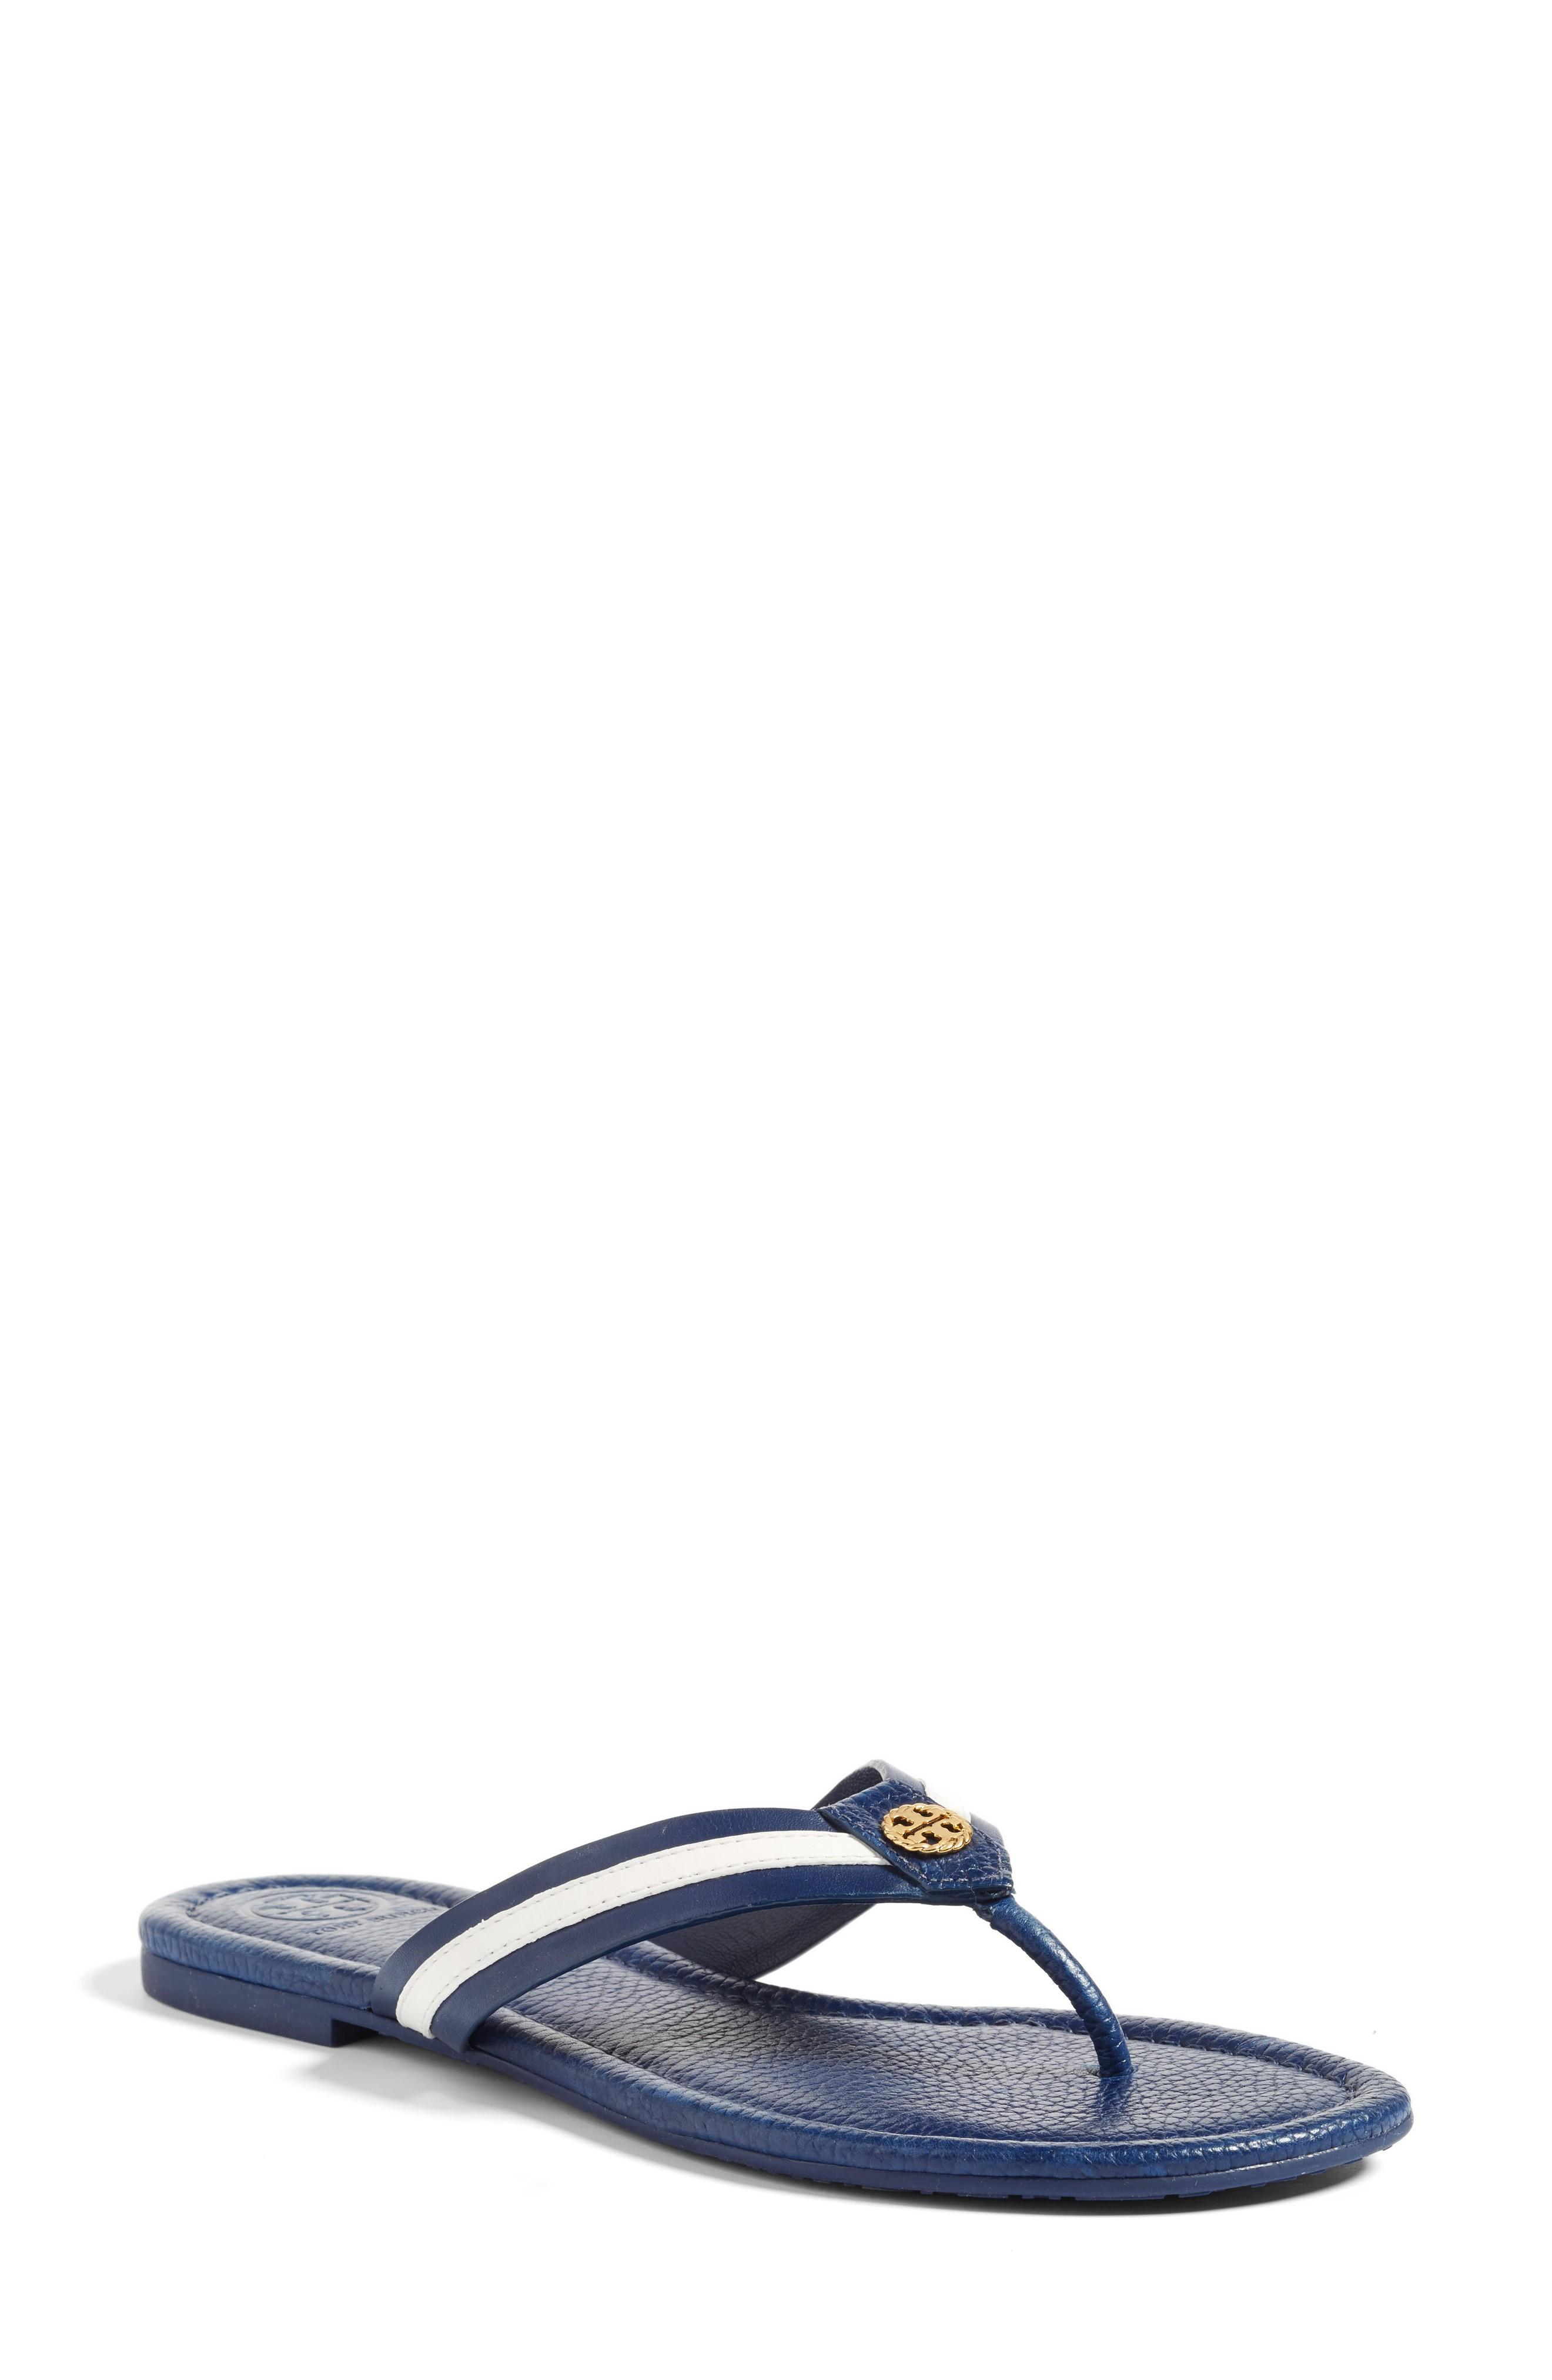 3009216da25 ... a golden logo medallion detailing the leather thong strap gets you  ready to set sail in polished maritime style. Style Name  Tory Burch  Maritime Flip ...